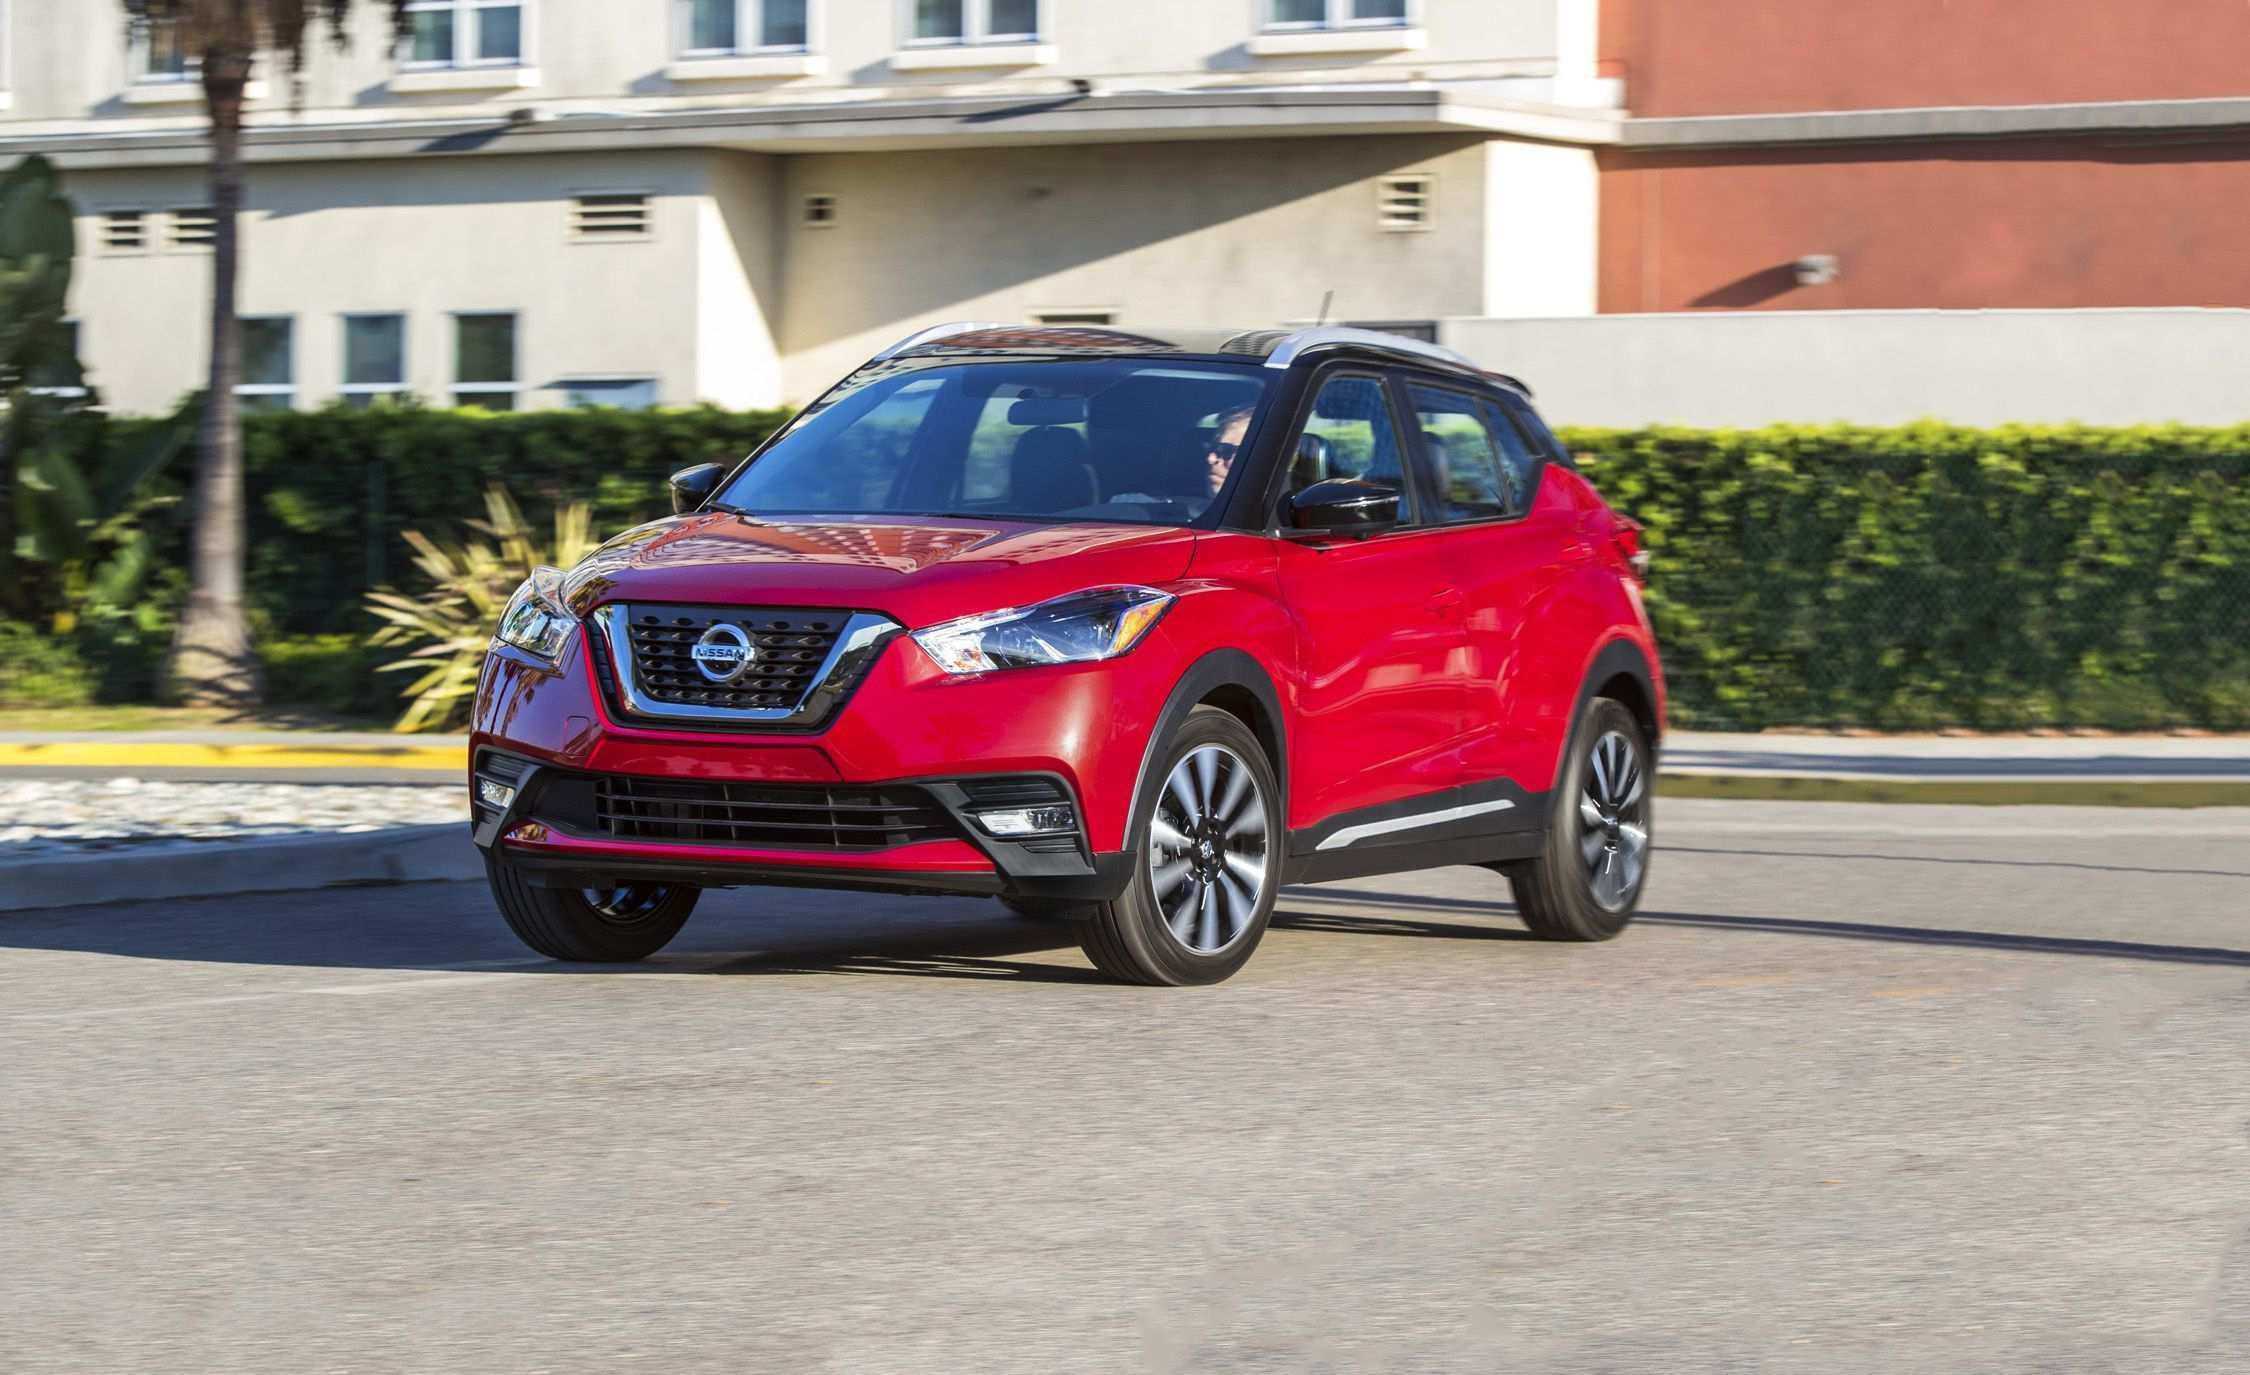 39 Best Review 2019 Nissan Kicks Review Price And Release Date First Drive by 2019 Nissan Kicks Review Price And Release Date